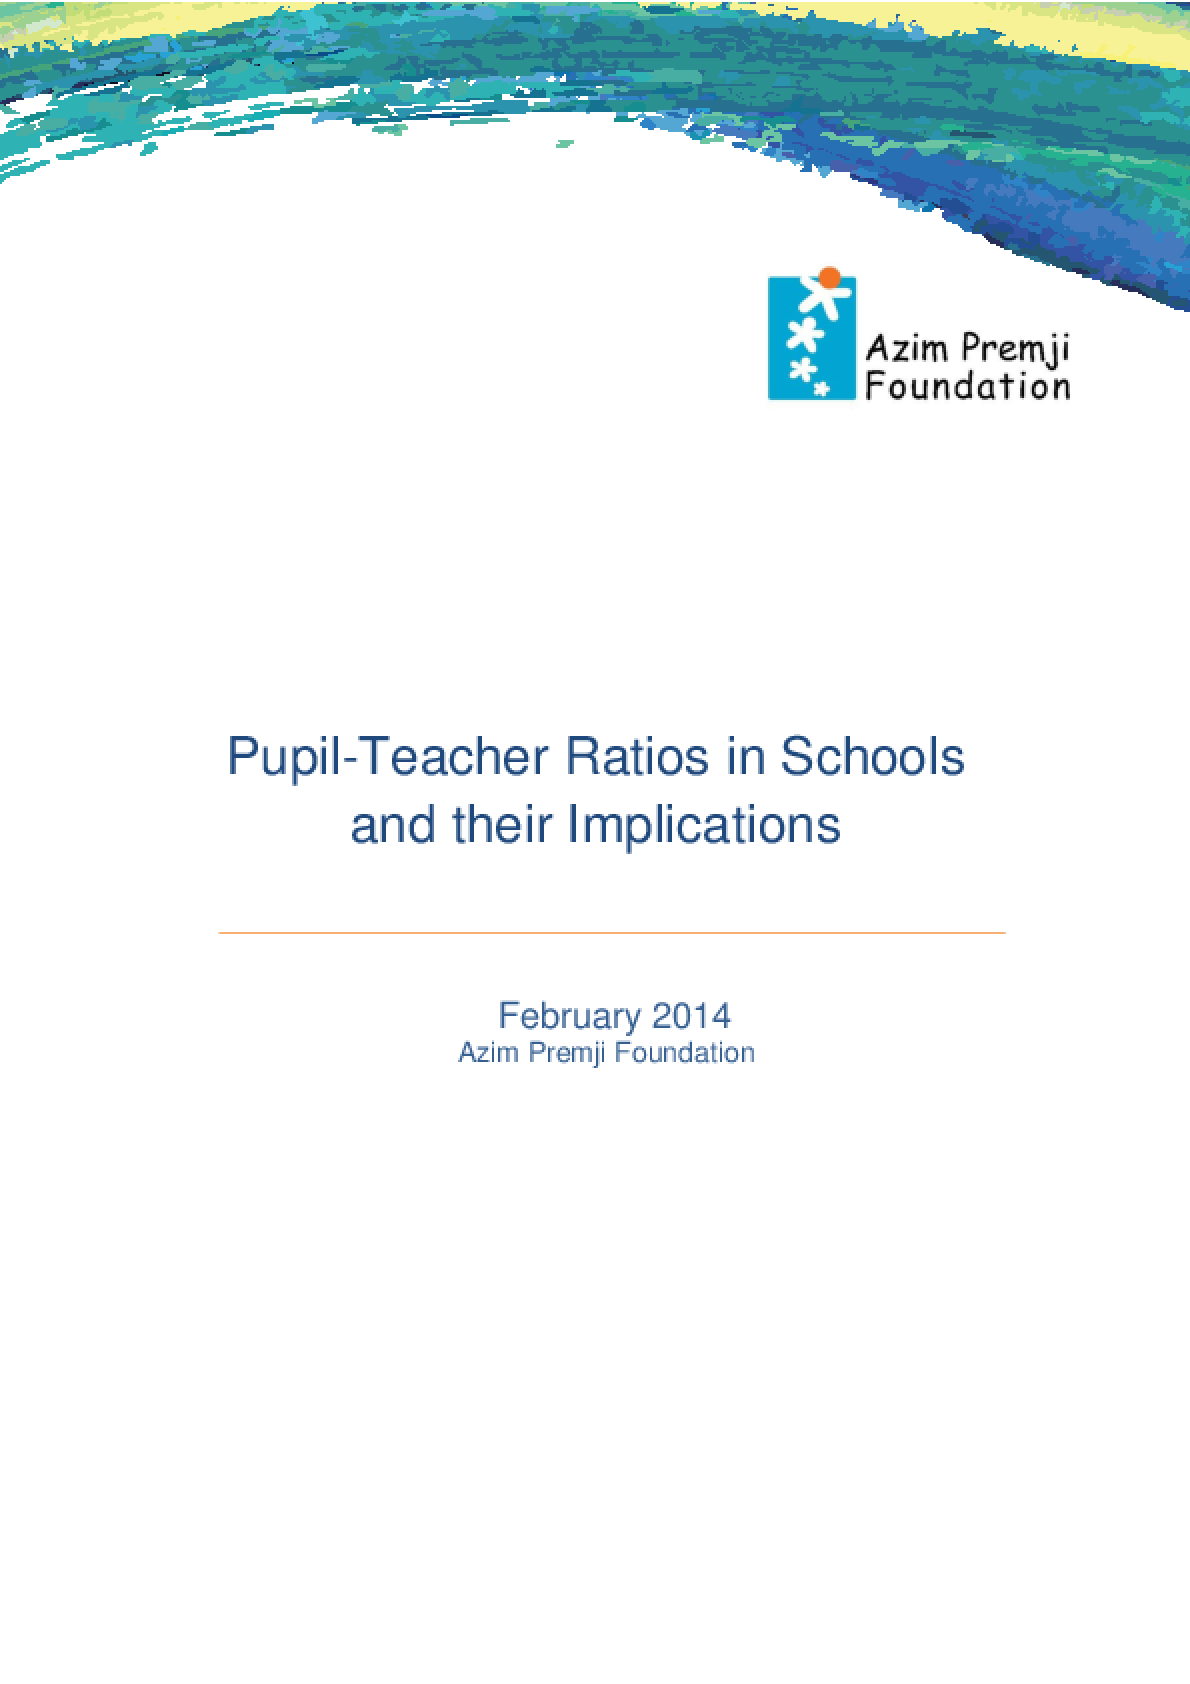 Pupil-Teacher Ratios In Schools and Their Implications